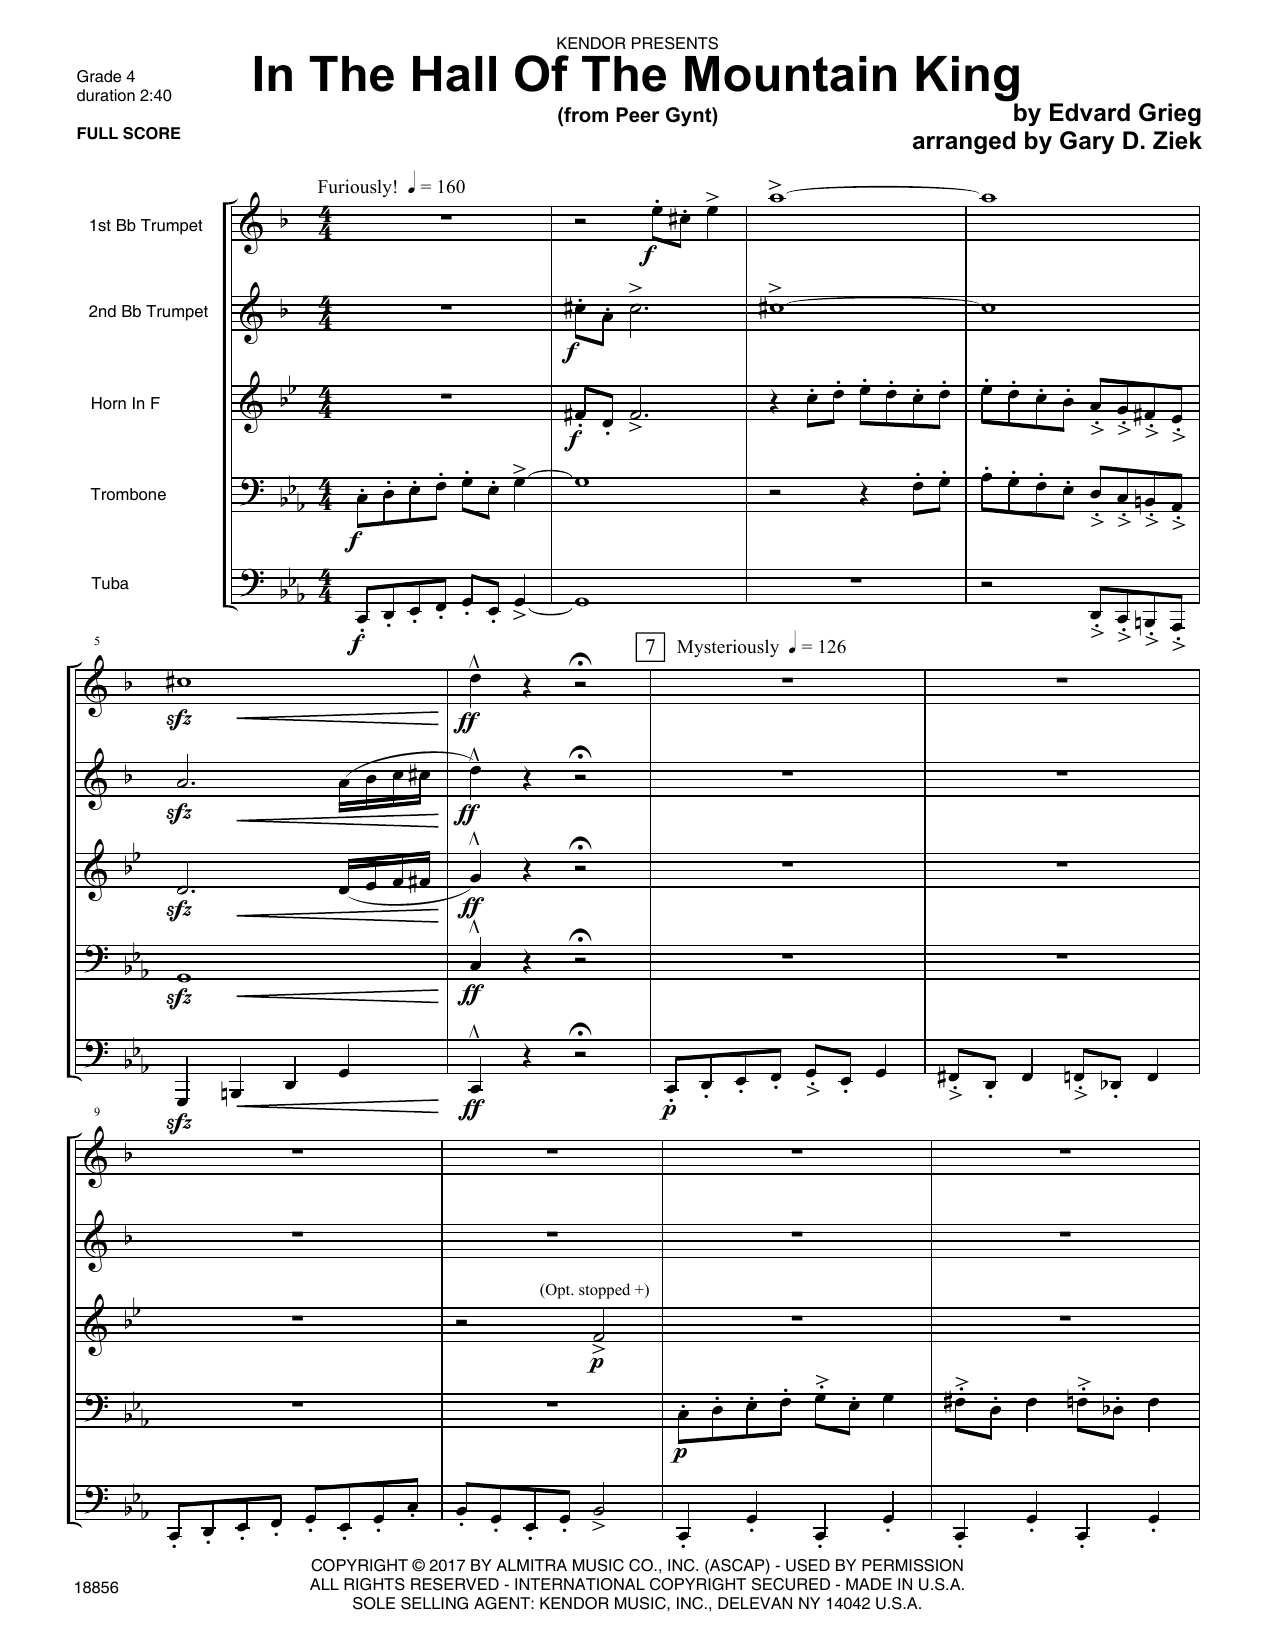 Gary D. Ziek In The Hall Of The Mountain King (from Peer Gynt) - Full Score sheet music notes printable PDF score